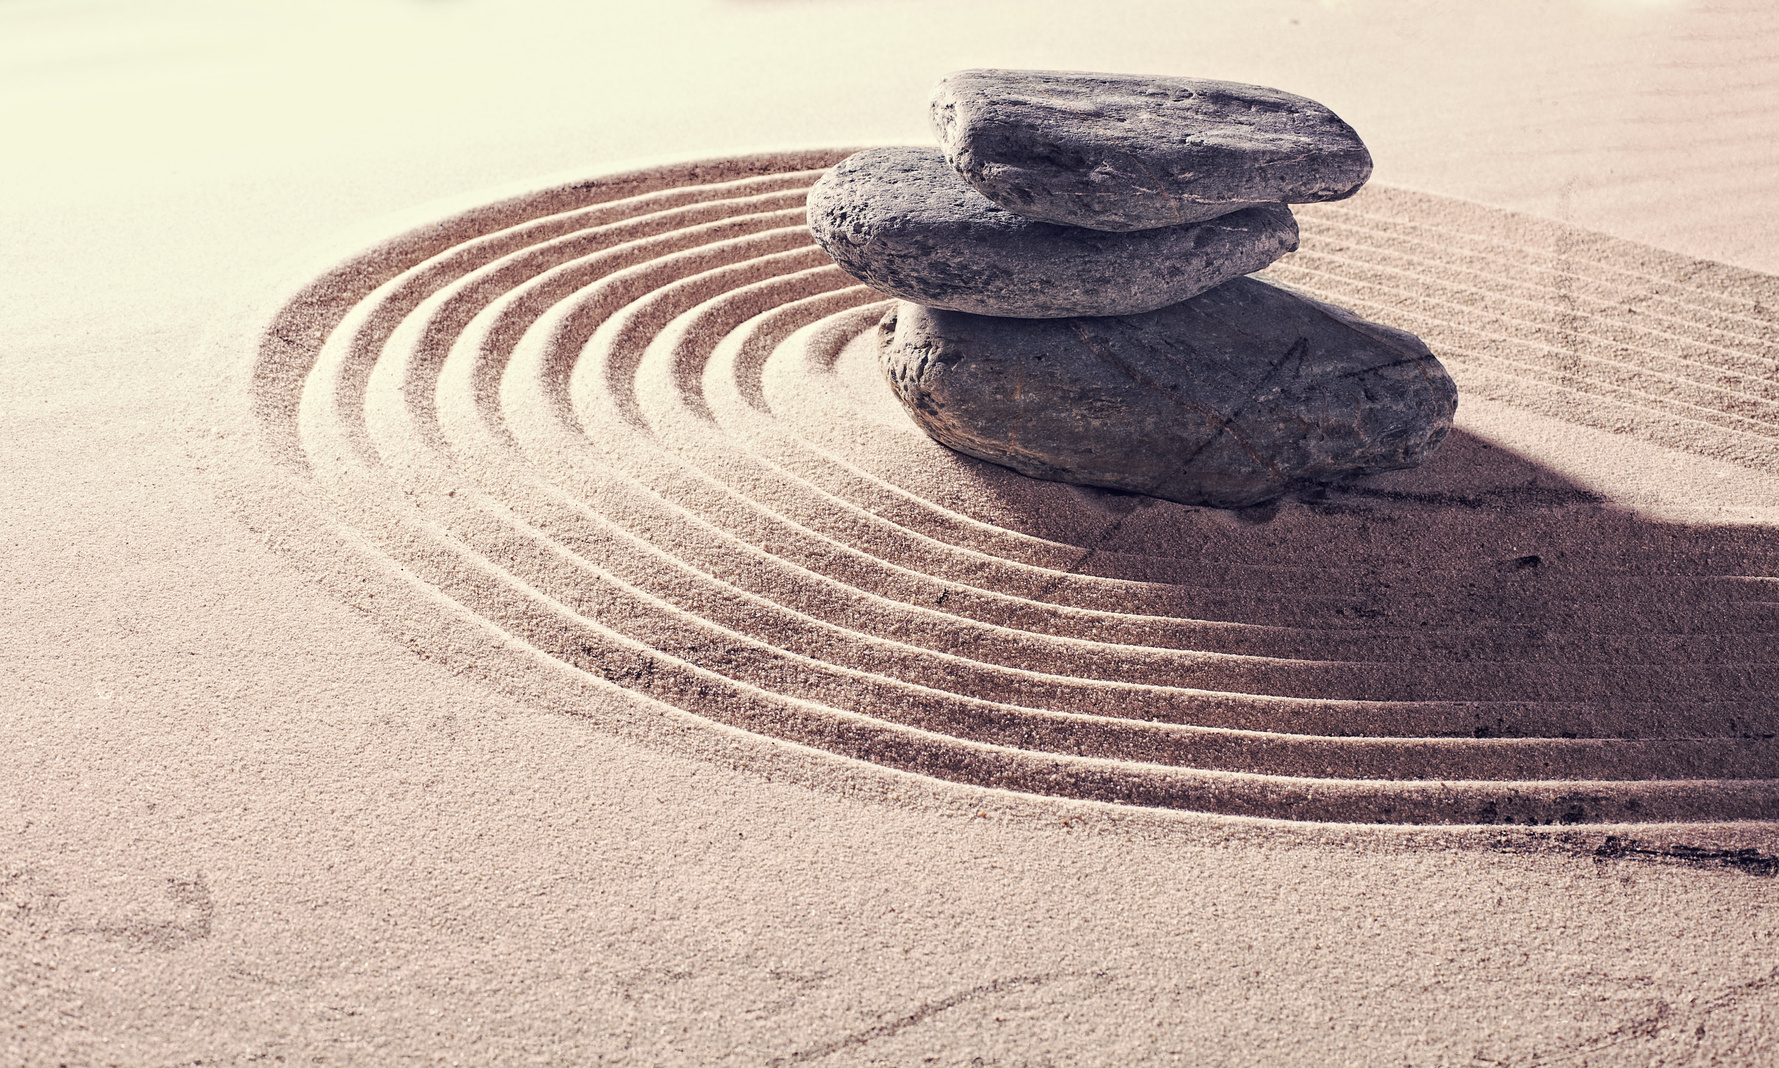 zen still life for spa and massage with sand and stones for relaxation and meditation with textured and contrast effects